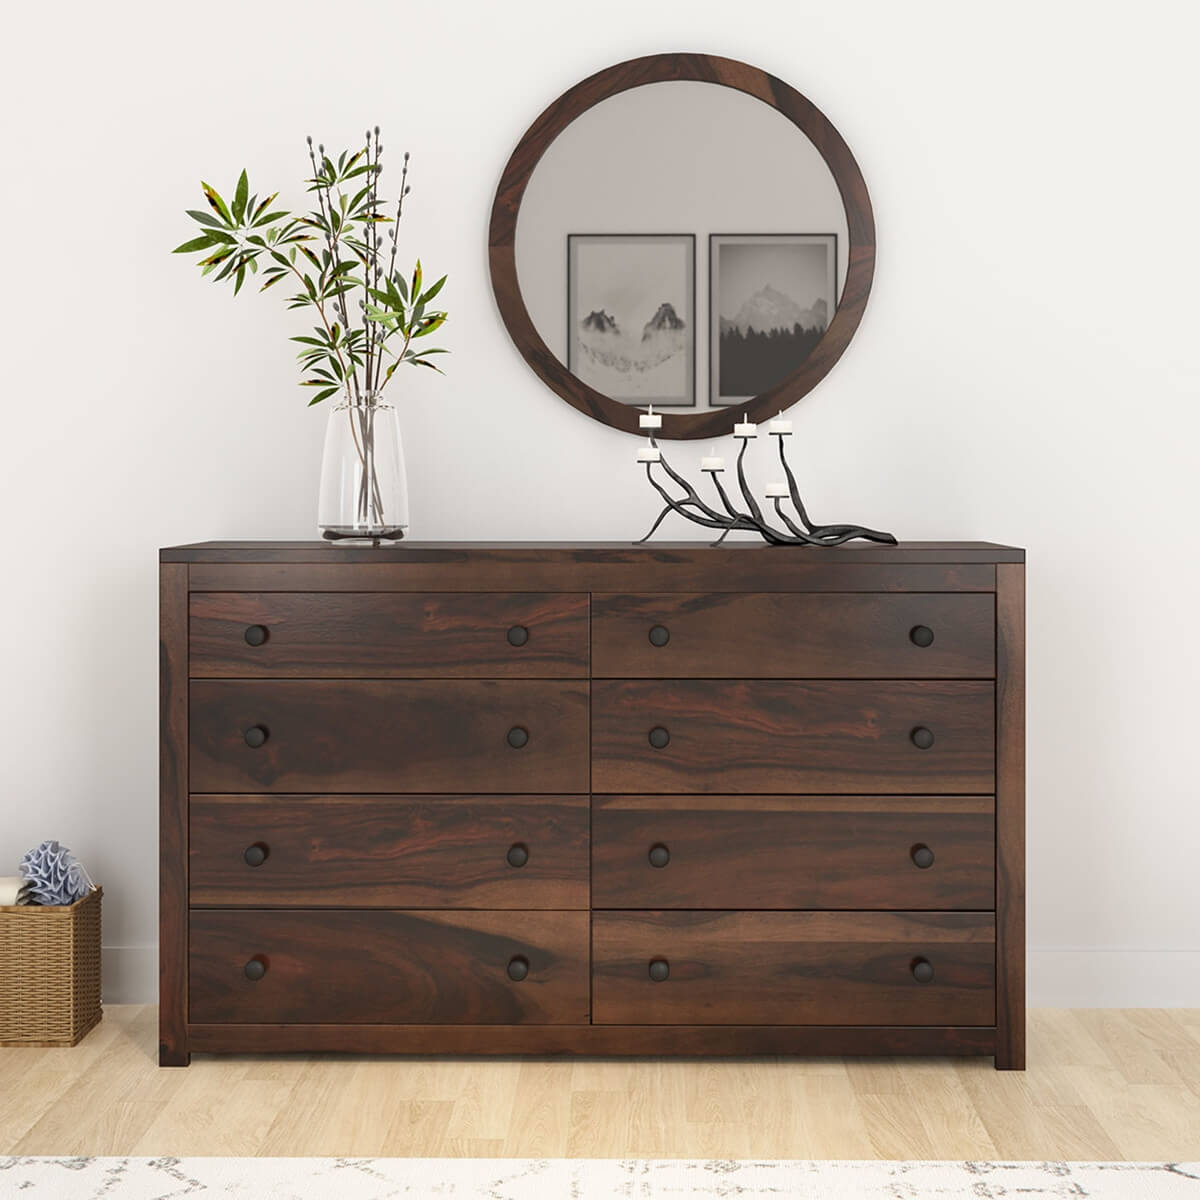 El Centro Rustic Solid Wood Bedroom Dresser with 8 Drawers